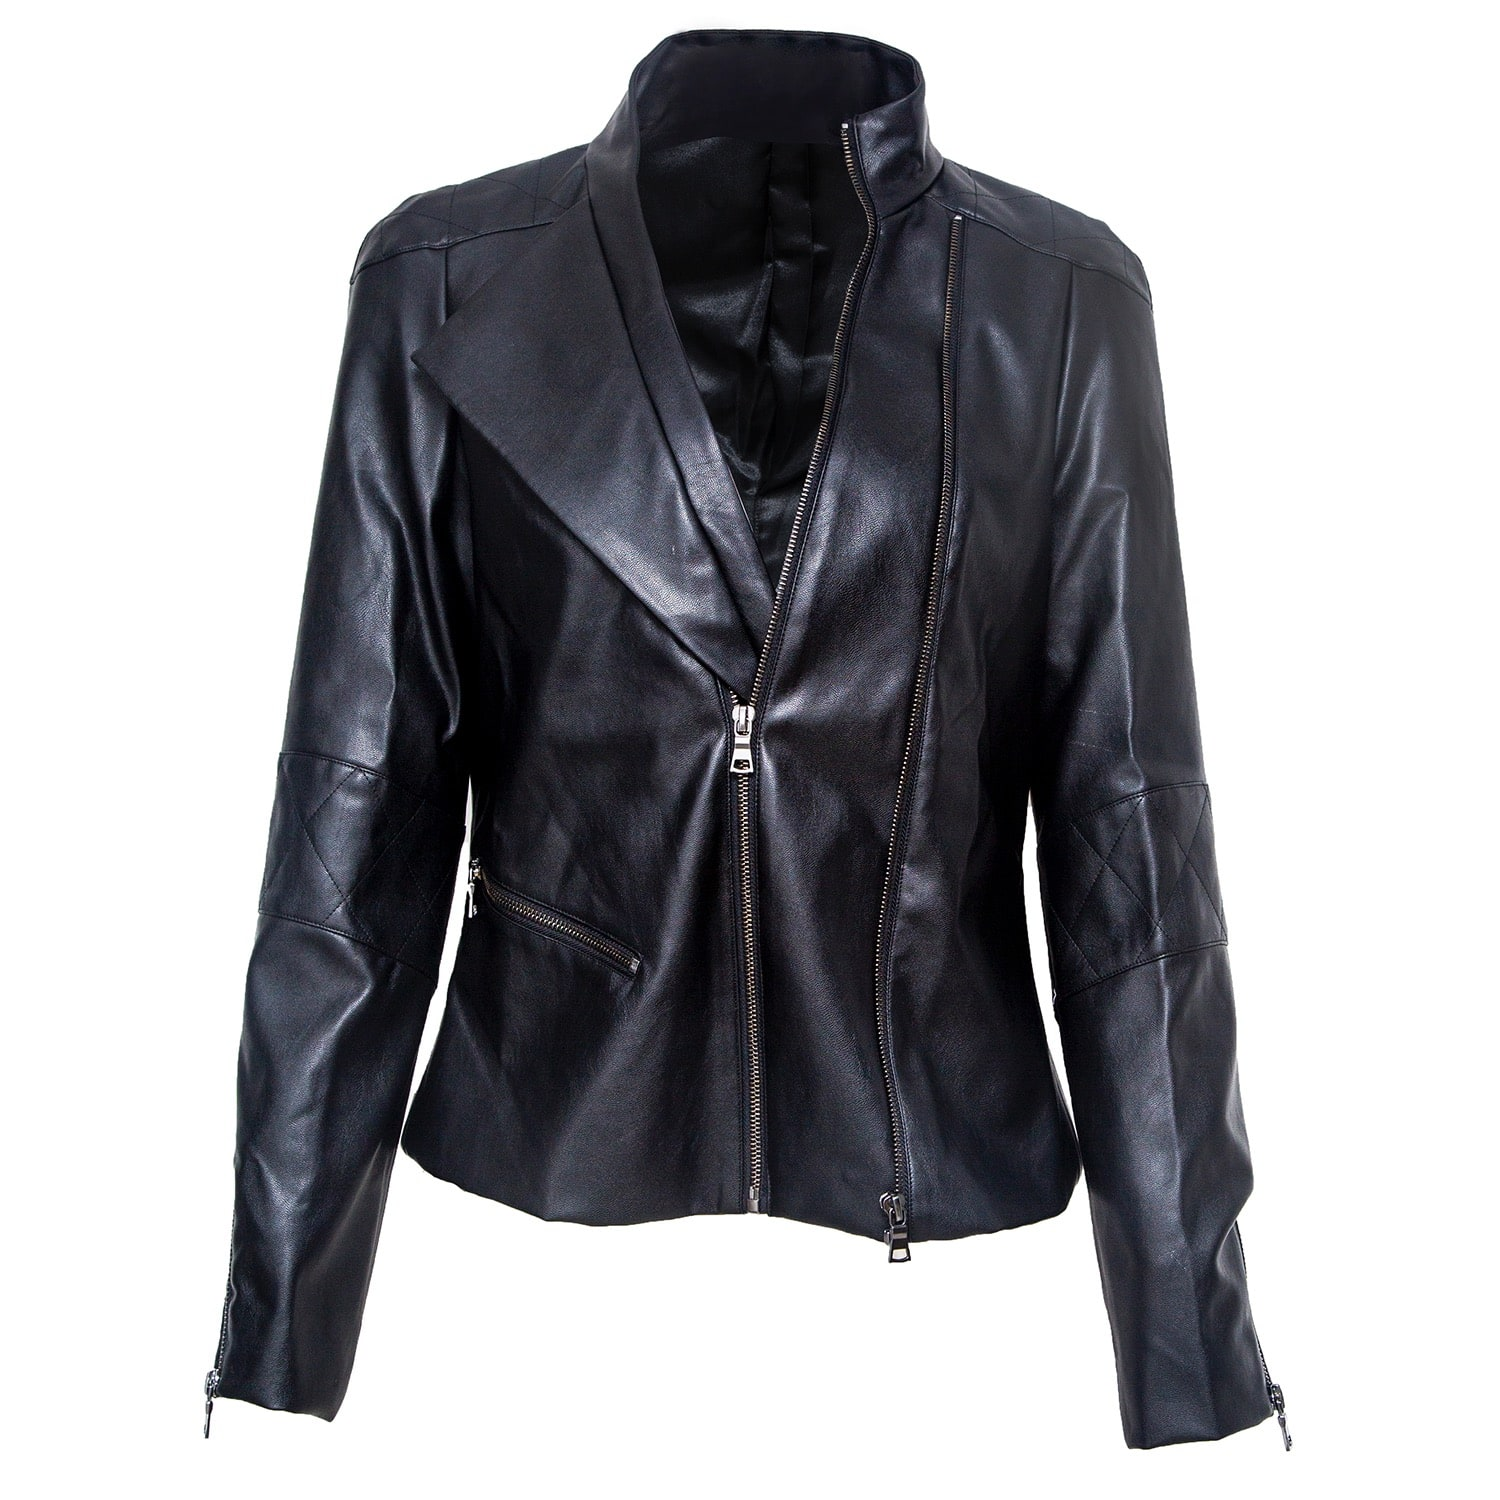 VHNY - Black Leather Look Jacket